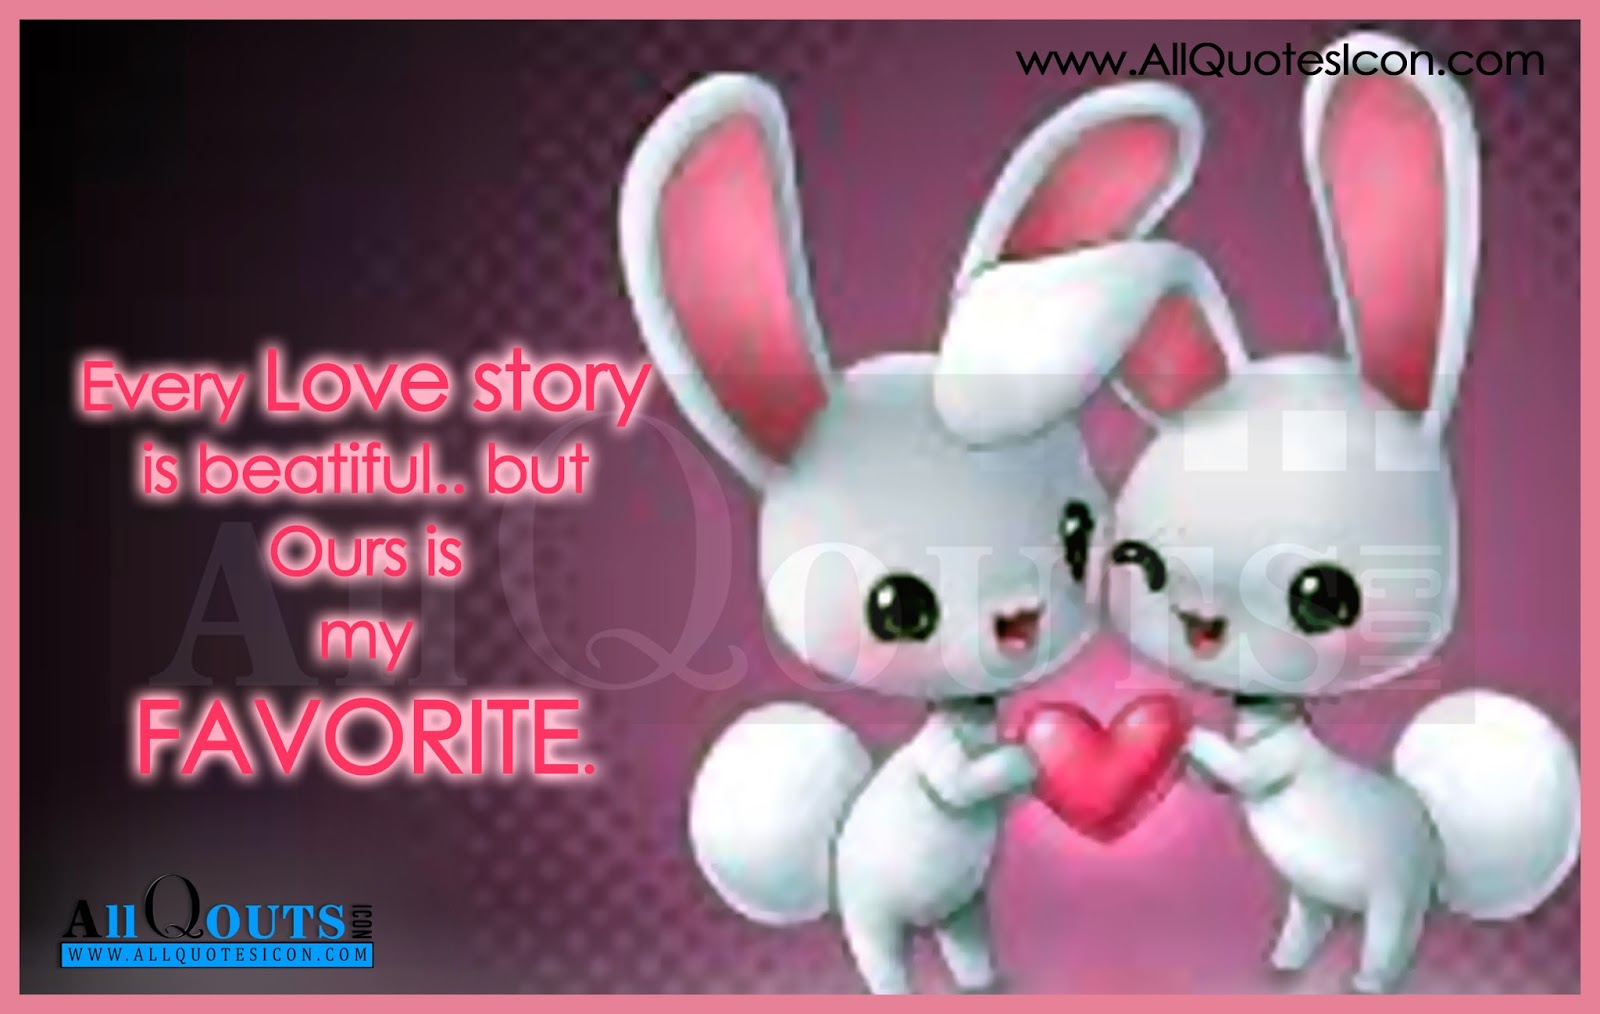 Best Love Quotes Images HD Pictures Best Heart Touching Love